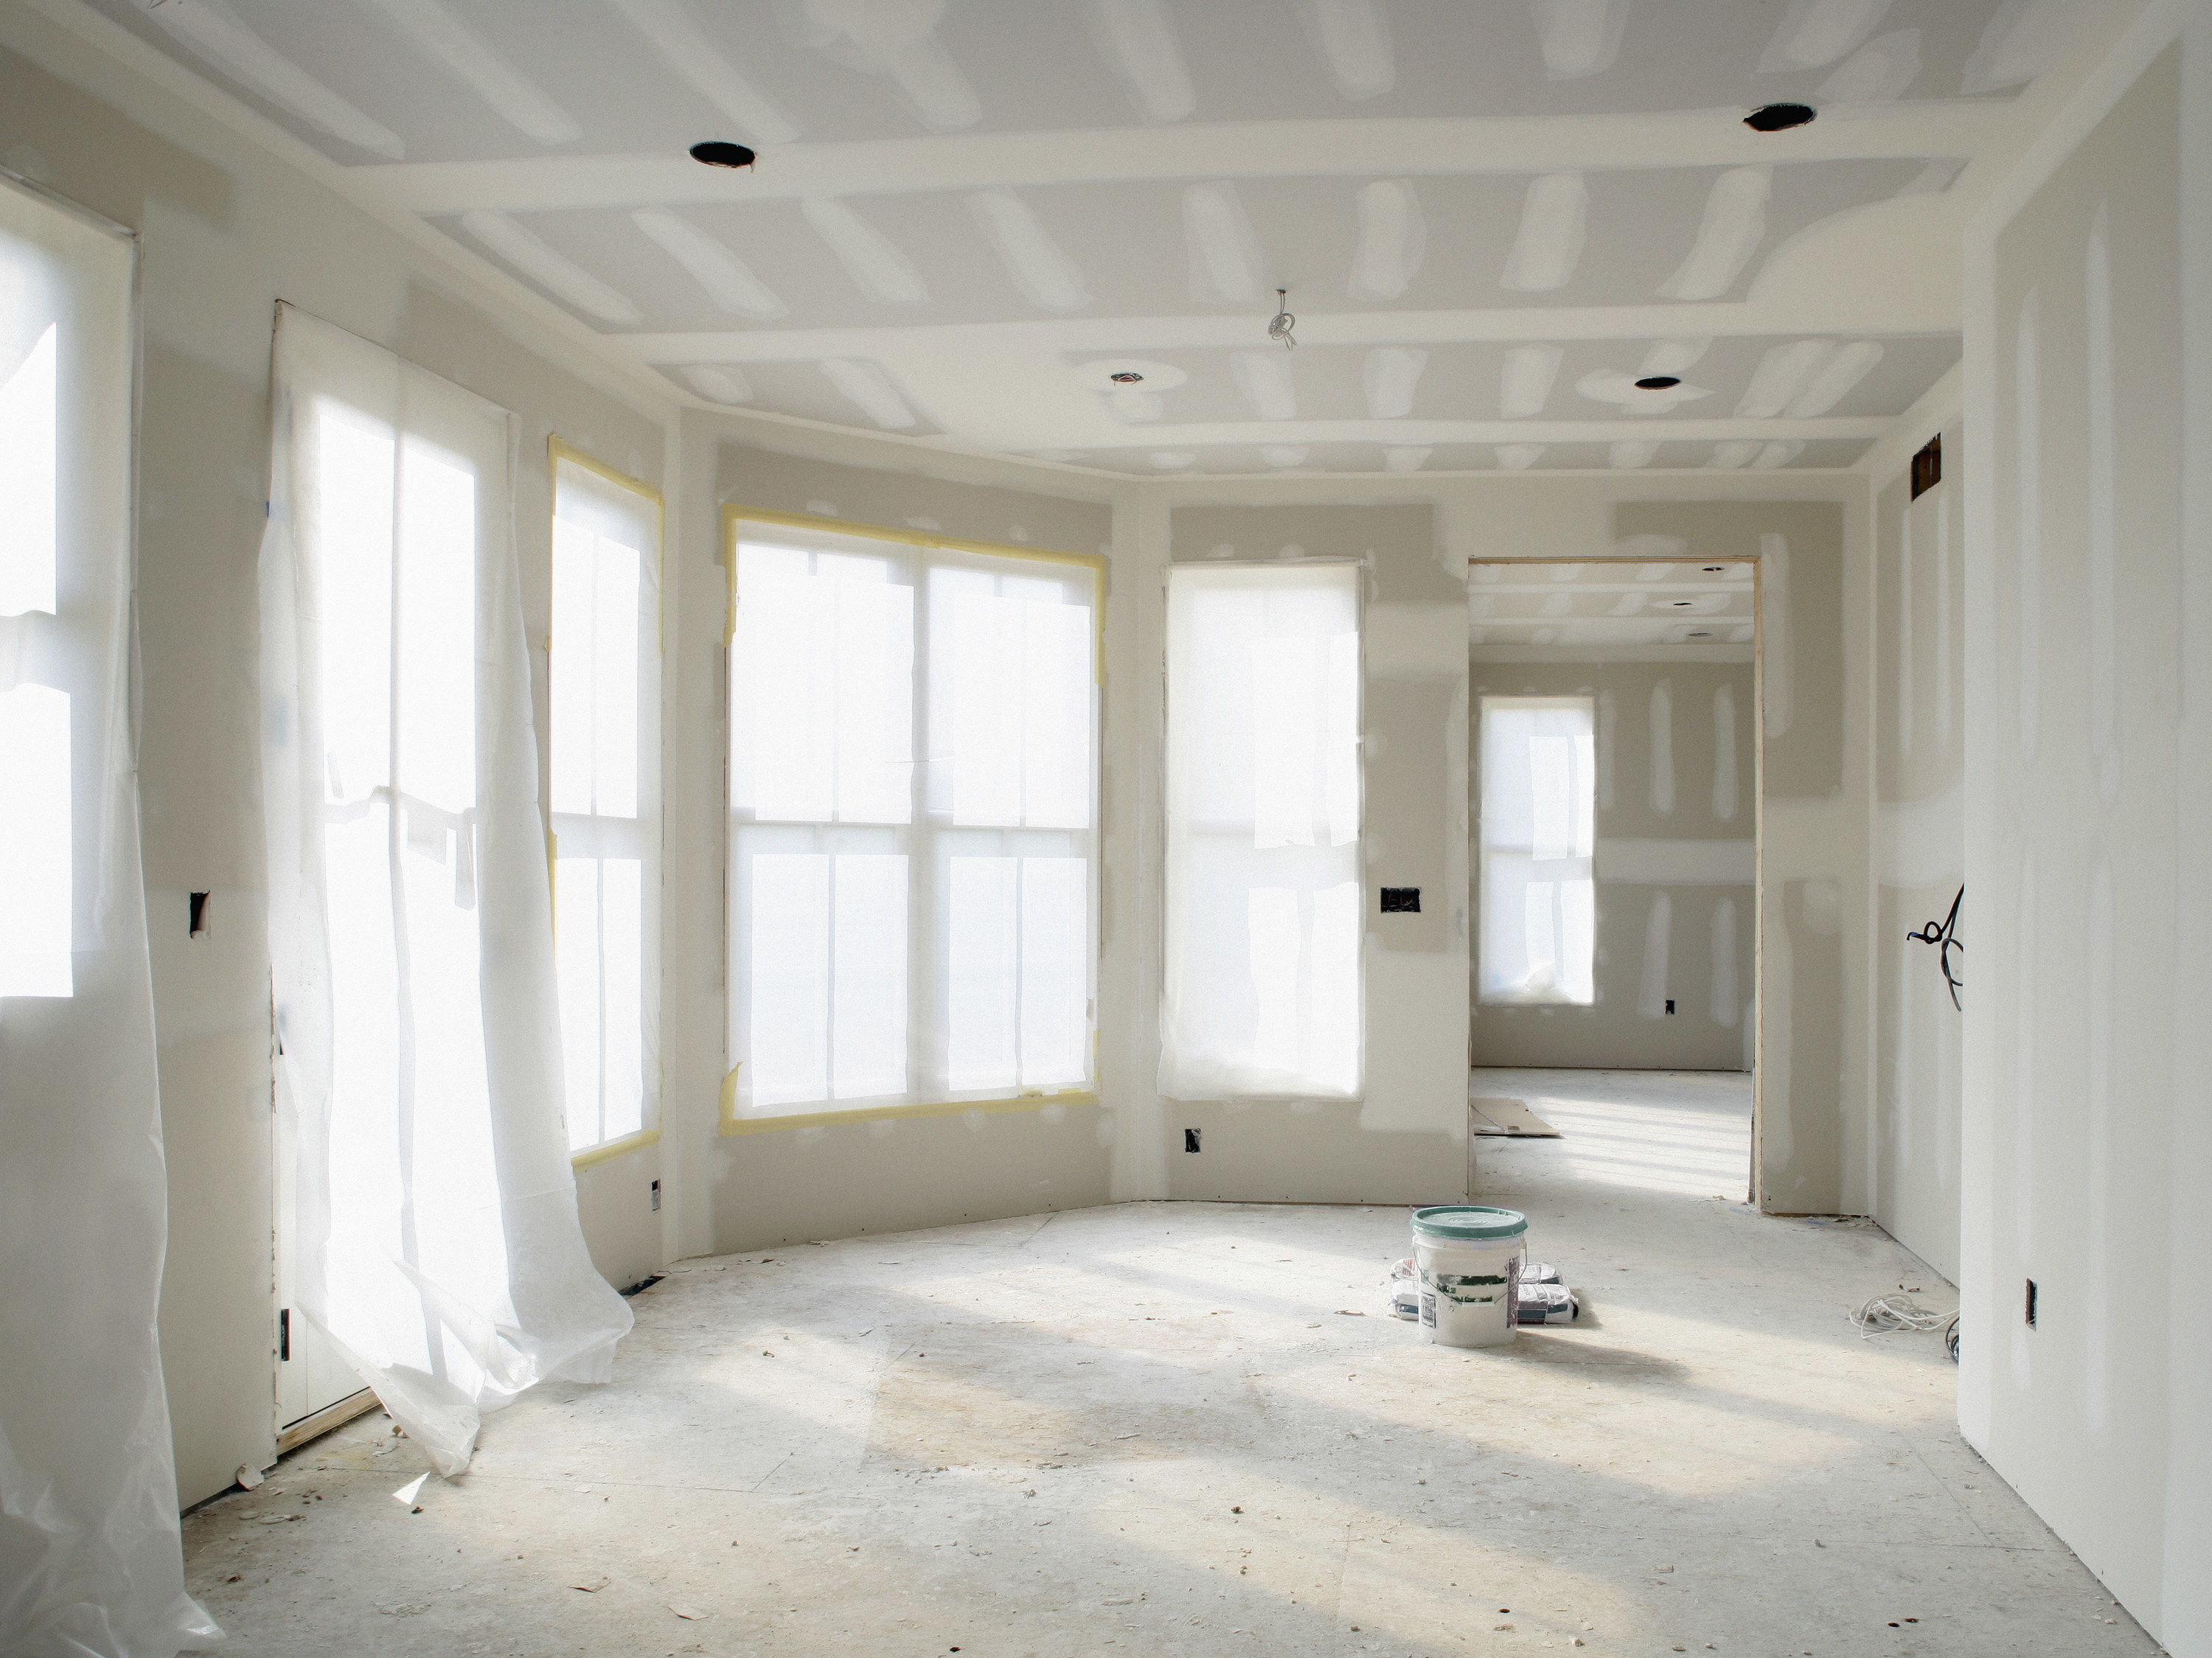 The interior of a room being remodeled with drywall